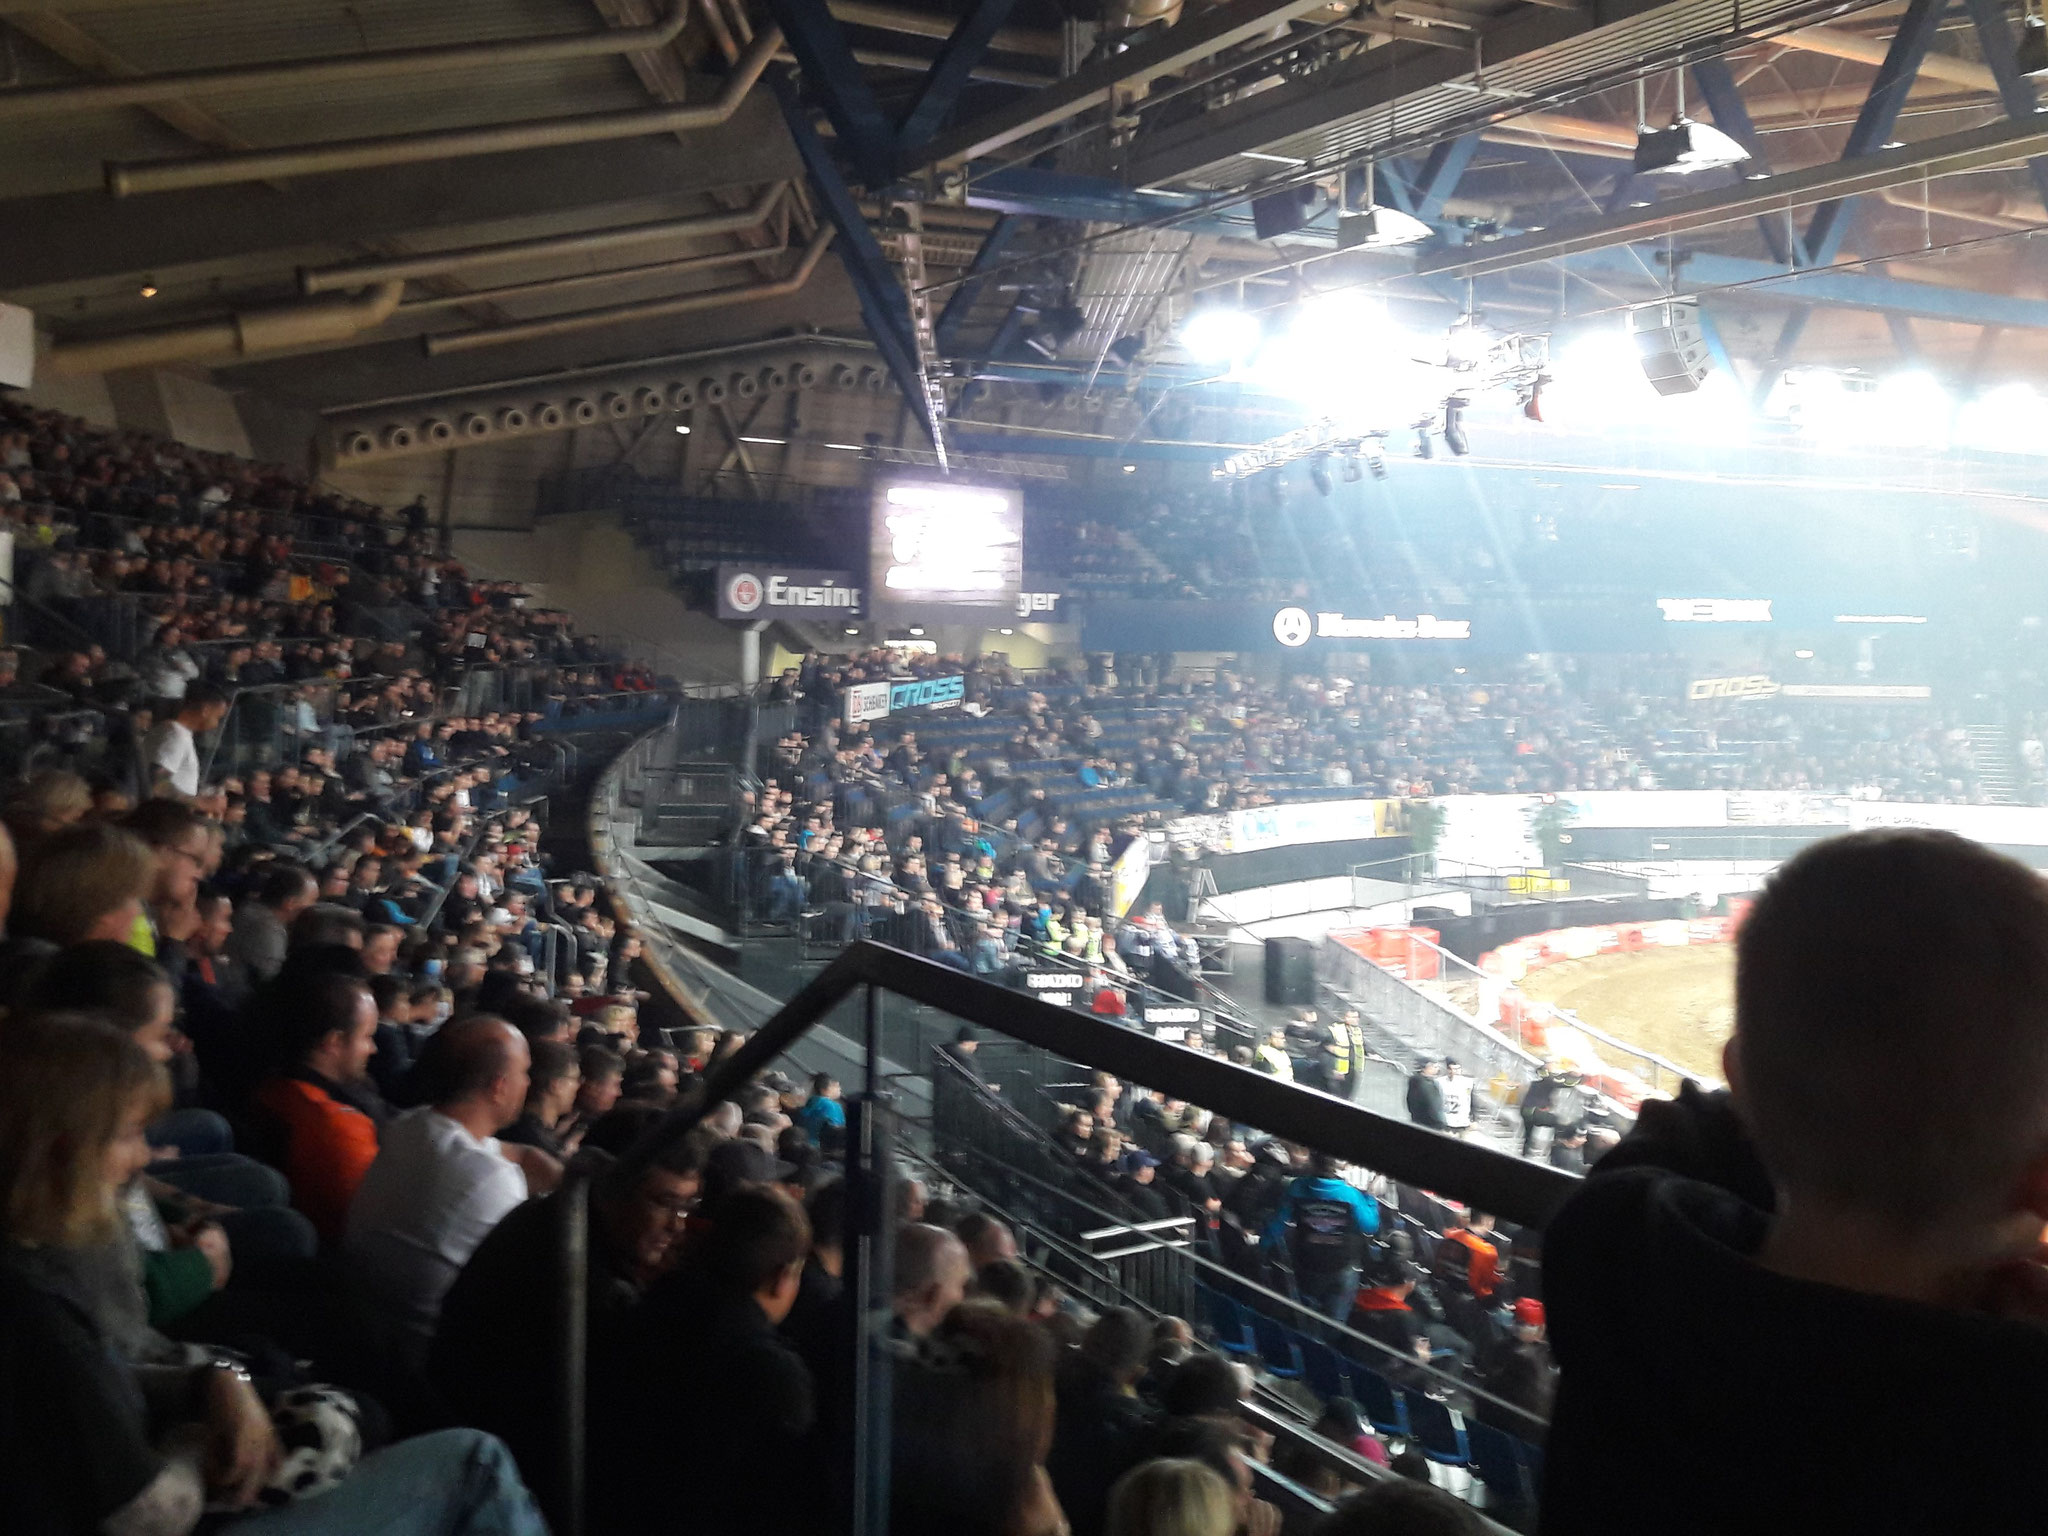 The full house in Stuttgart does not help to calm down;)